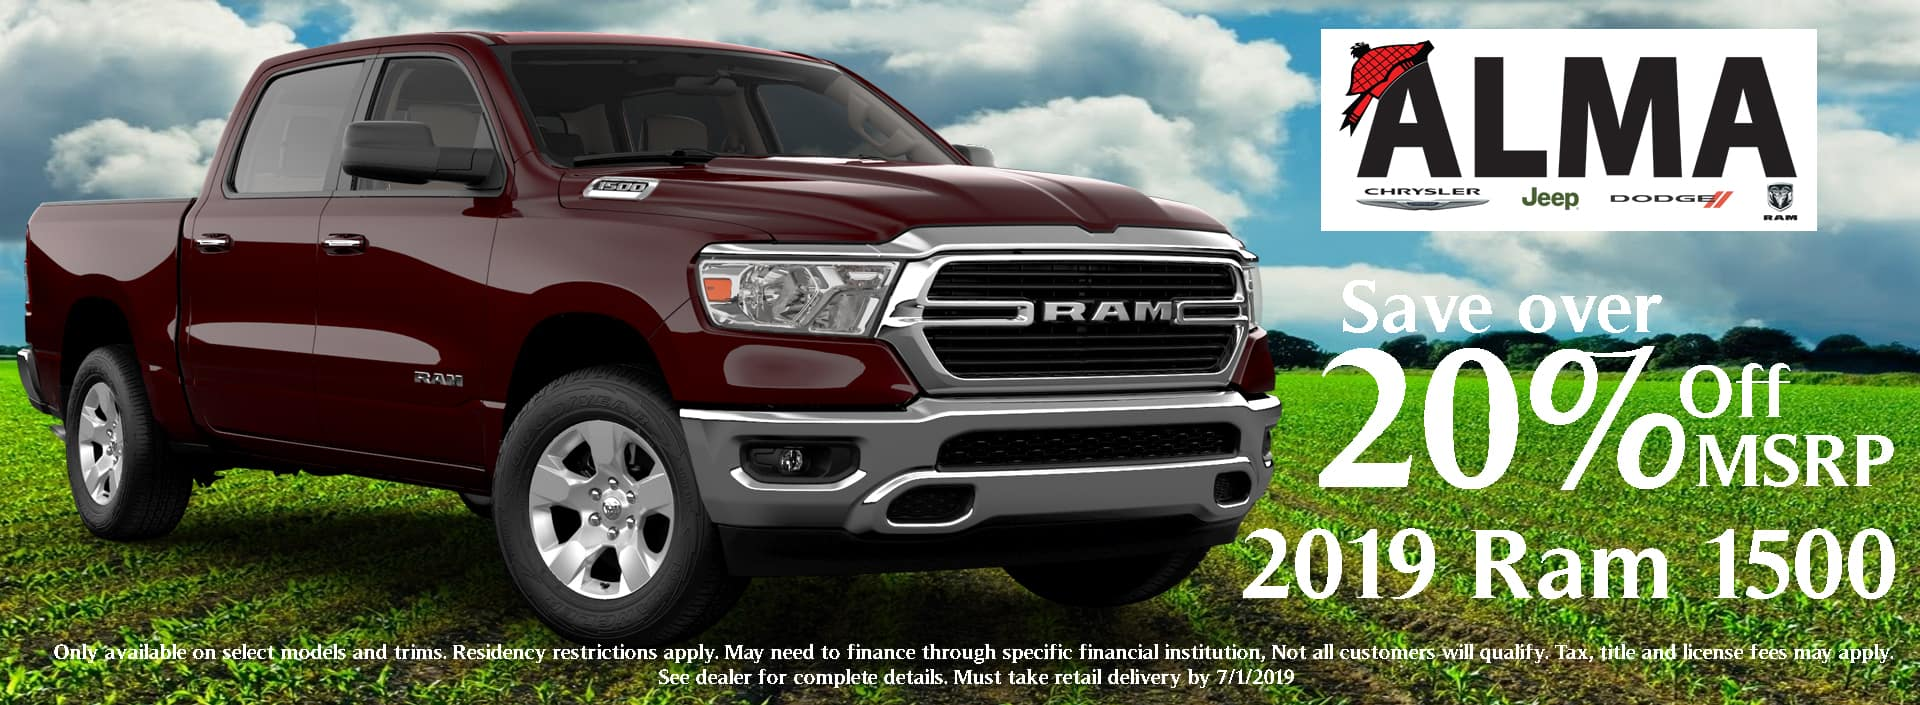 Save over 20% off MSRP on select Ram 1500s